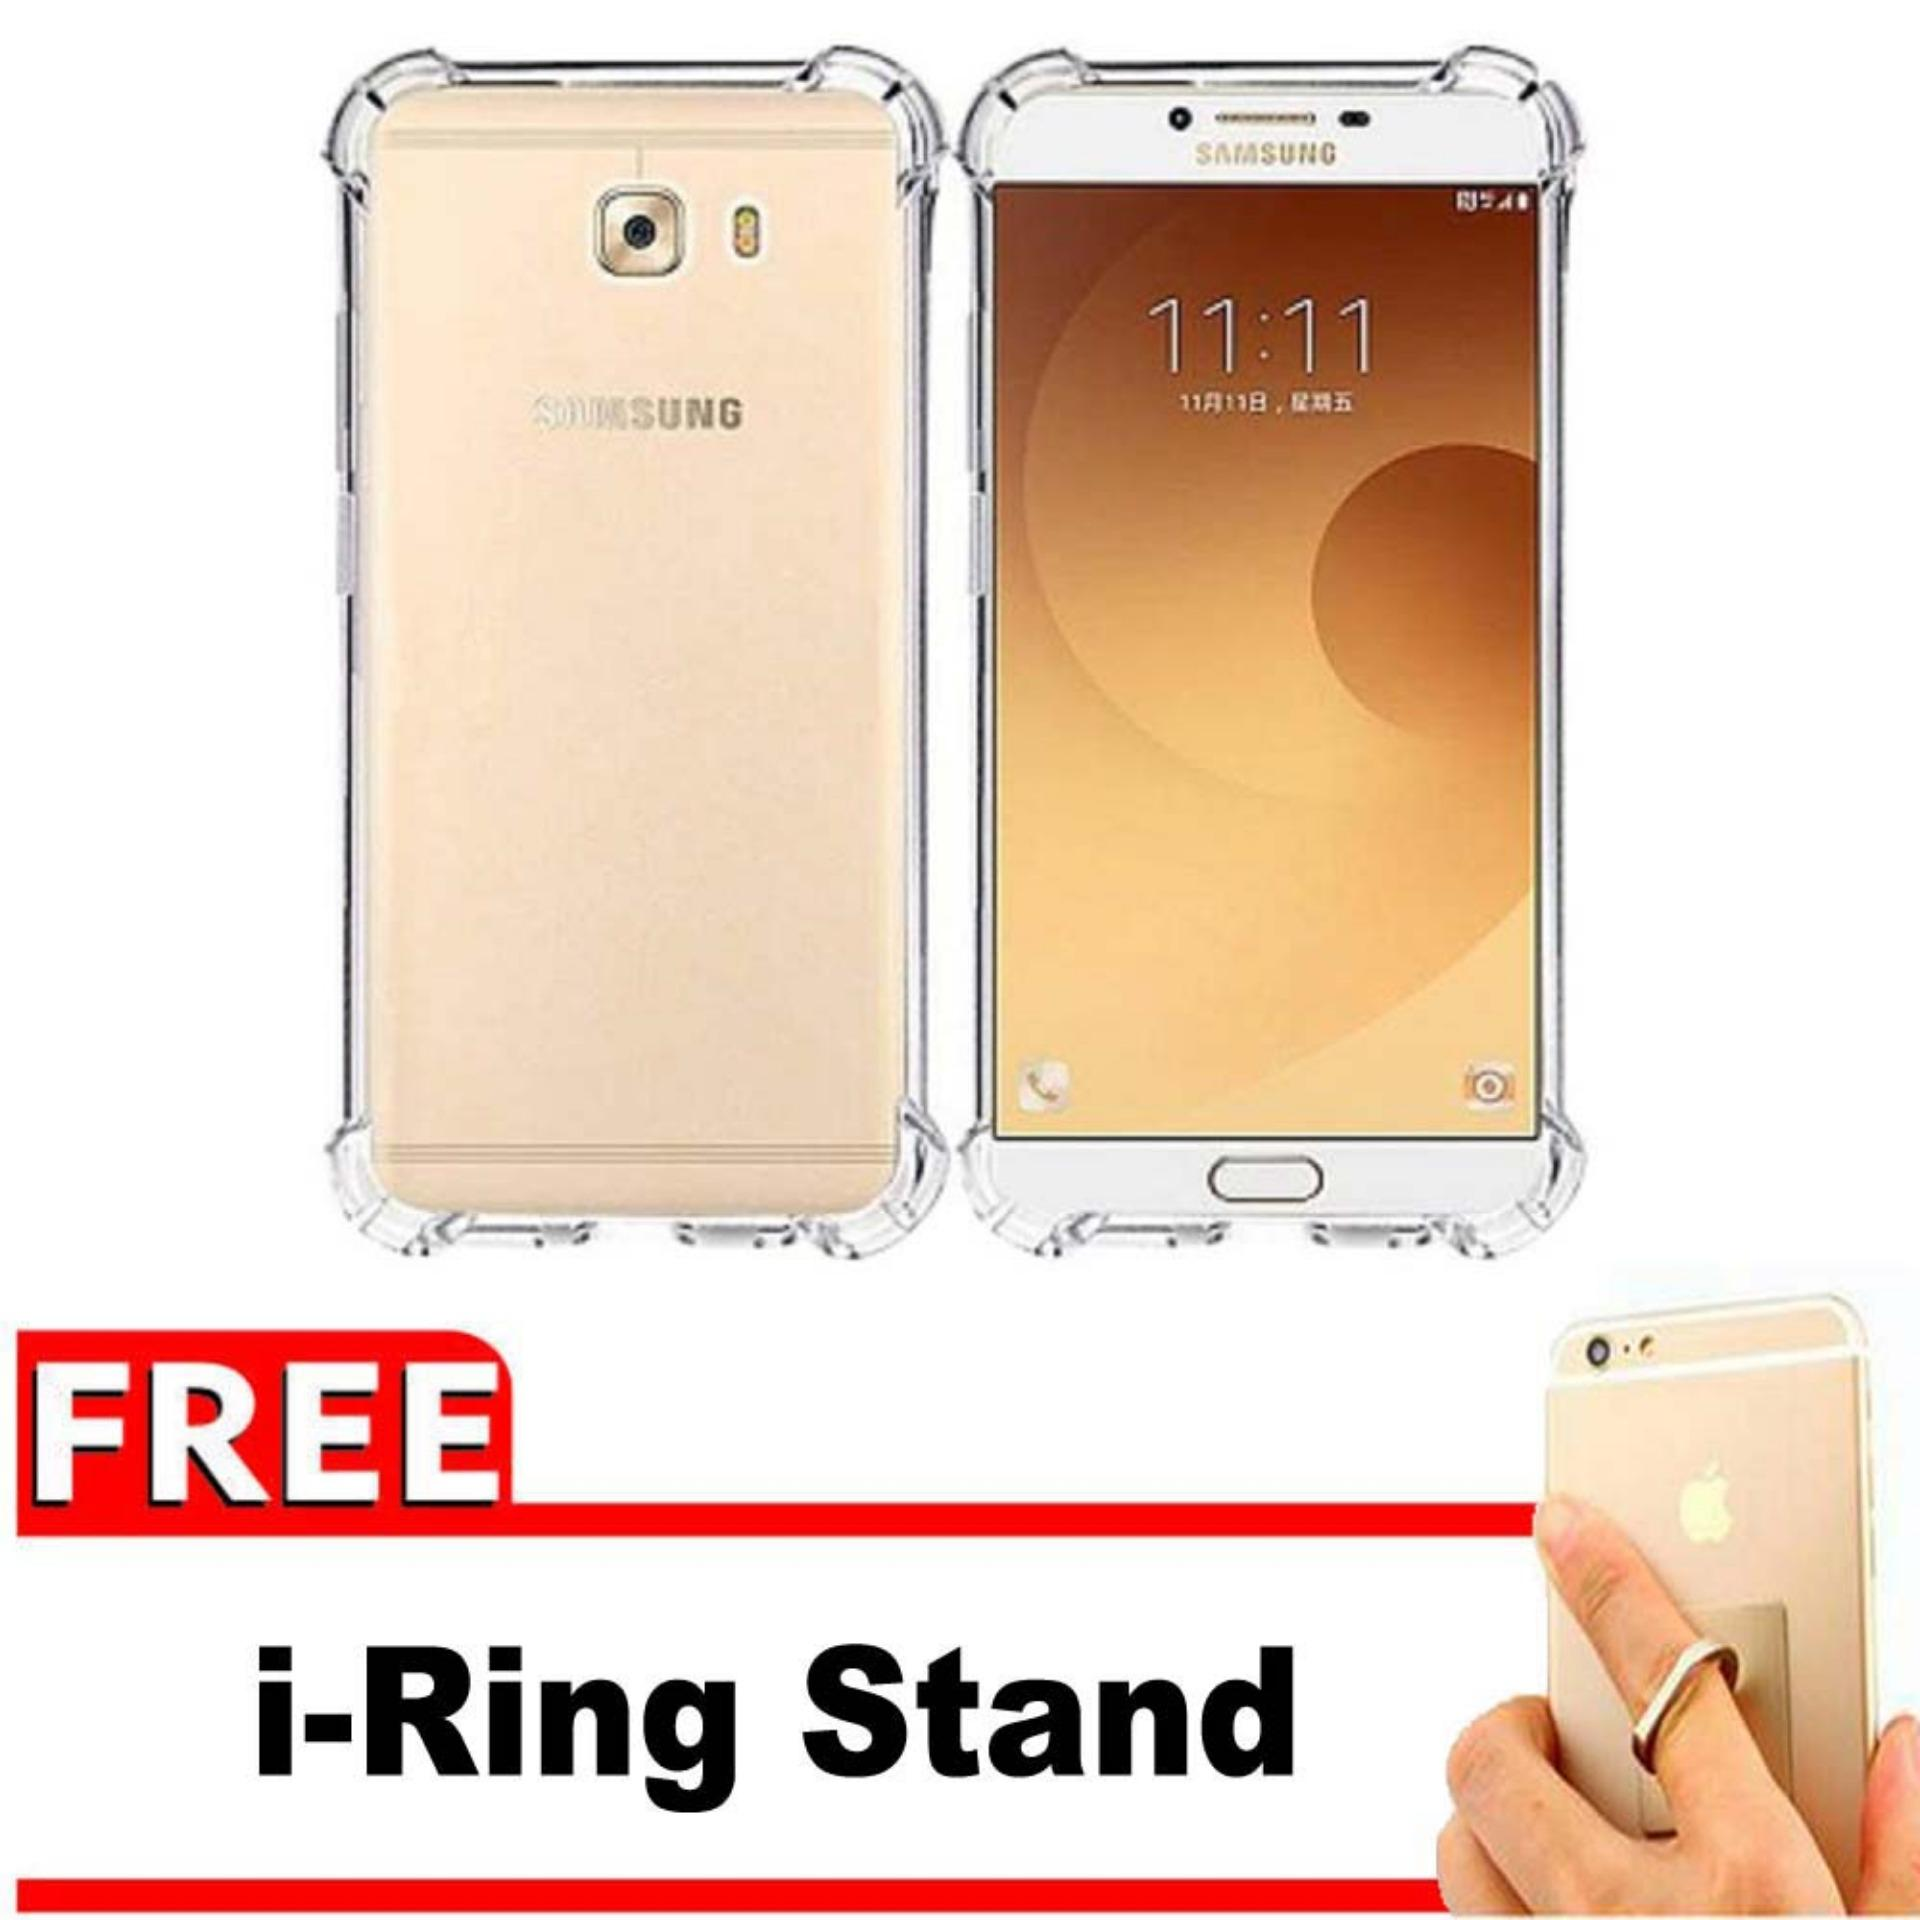 ShockCase for Samsung Galaxy C9 Pro / 4G LTE / Duos | Premium Softcase Jelly Anti Crack Shockproof - Gratis Free iRing Stand Phone Holder - Transparan